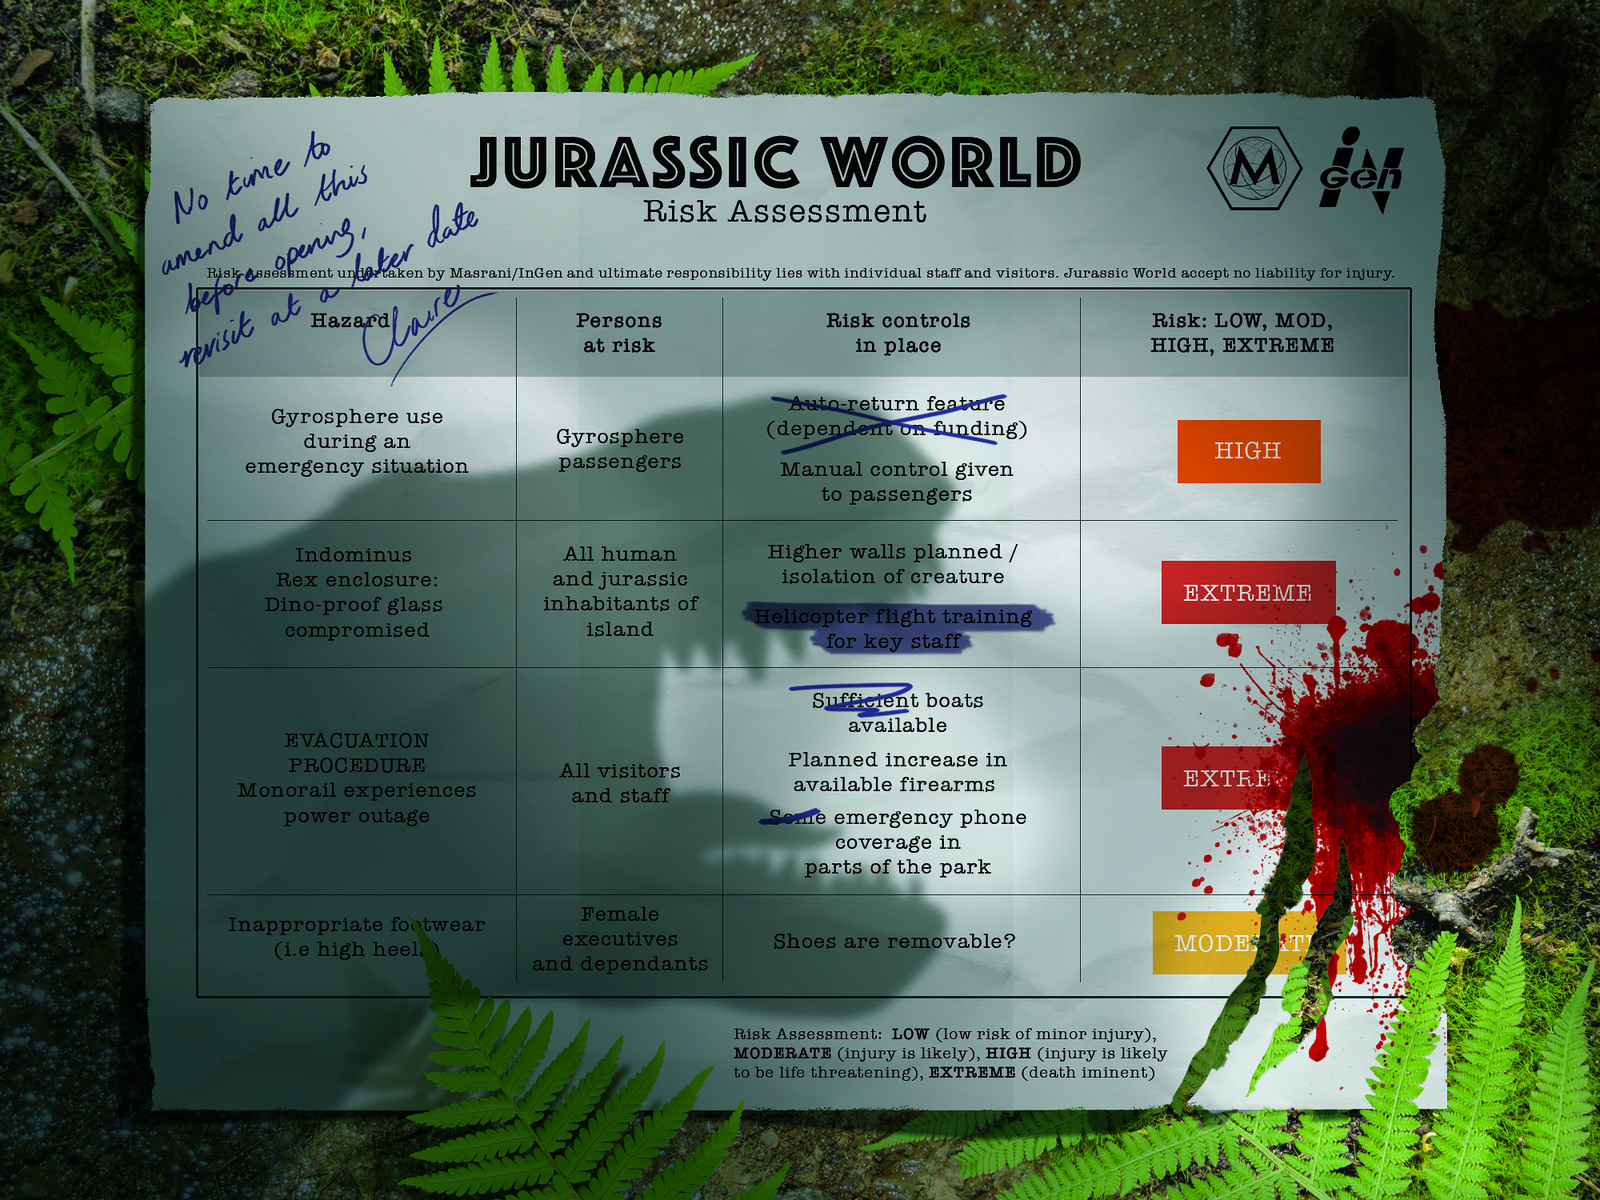 Jurassic World Risk Assessment